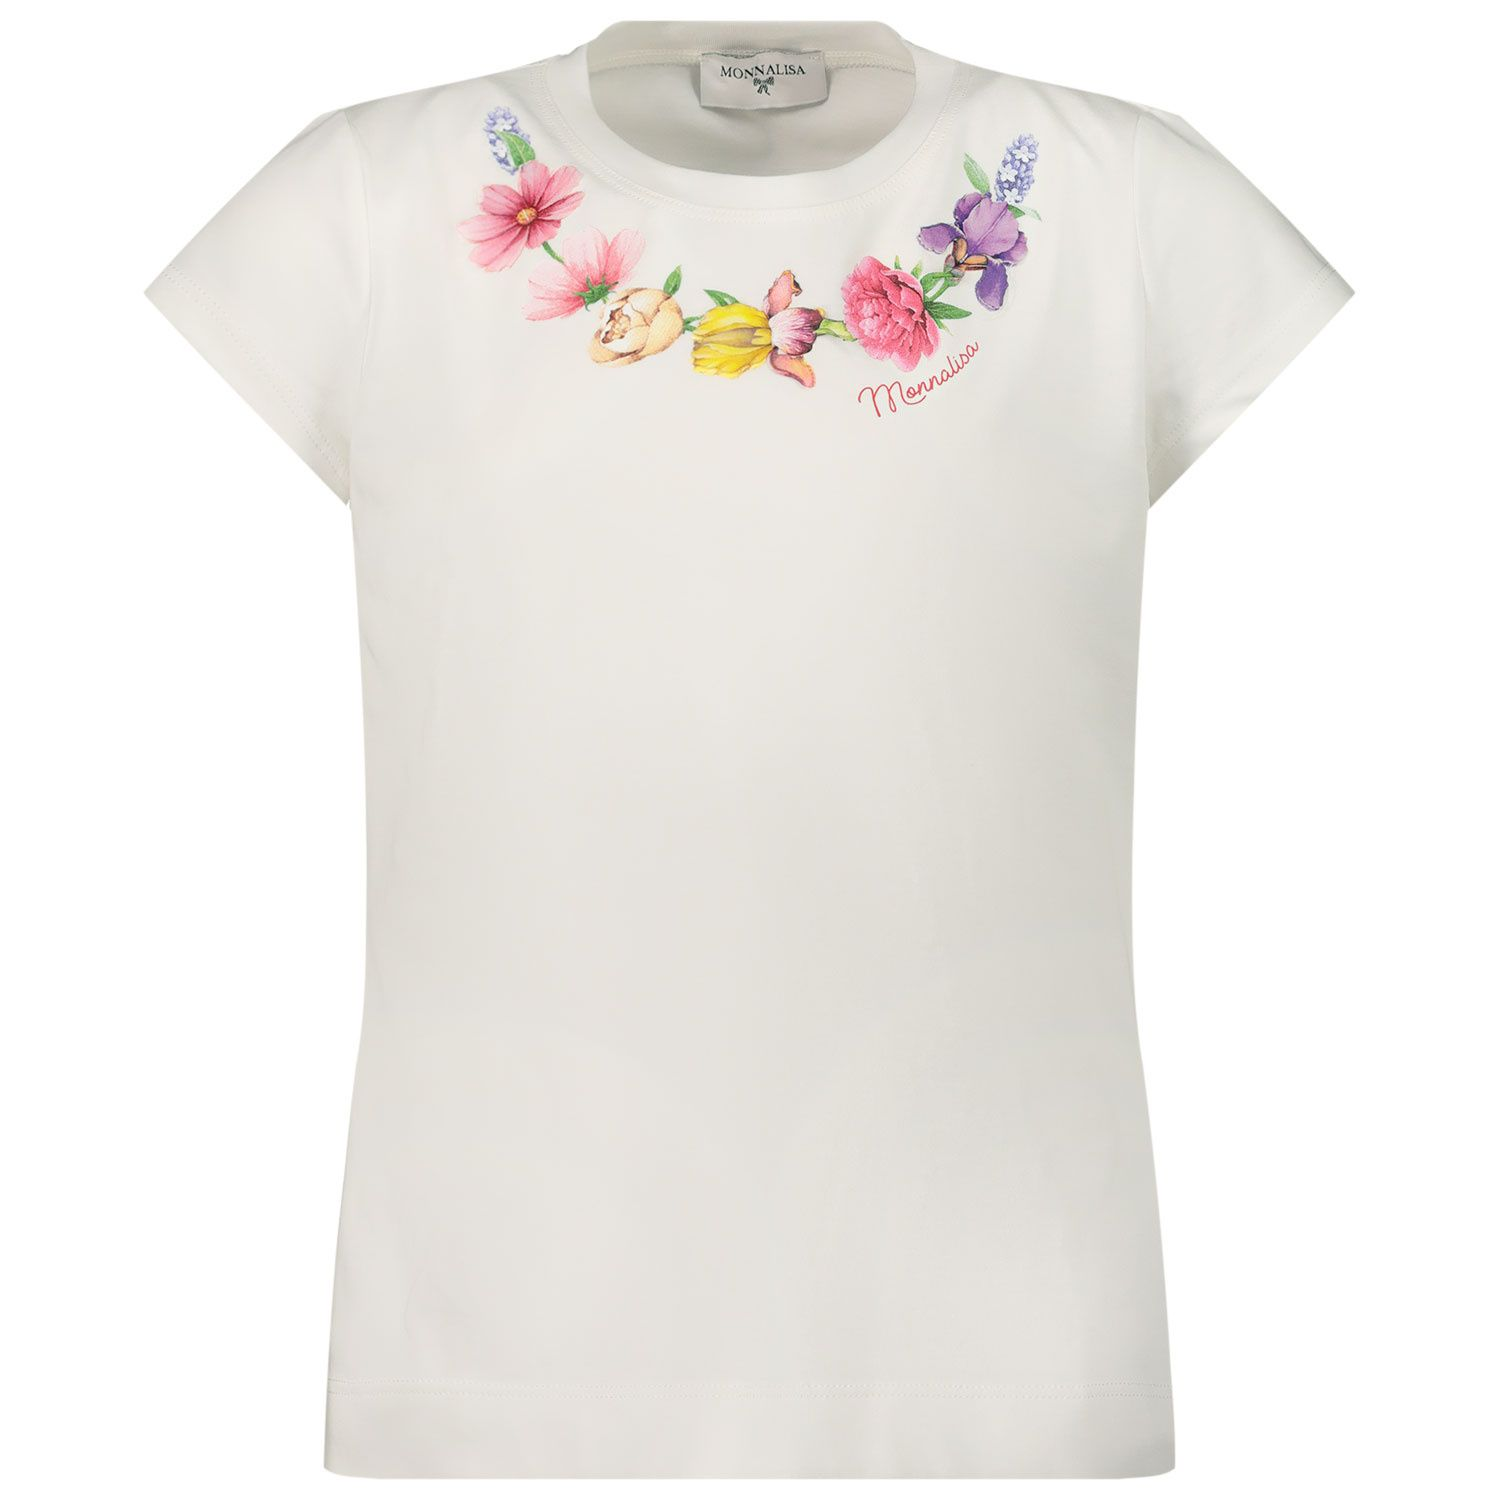 Picture of MonnaLisa 117603S4 kids t-shirt off white